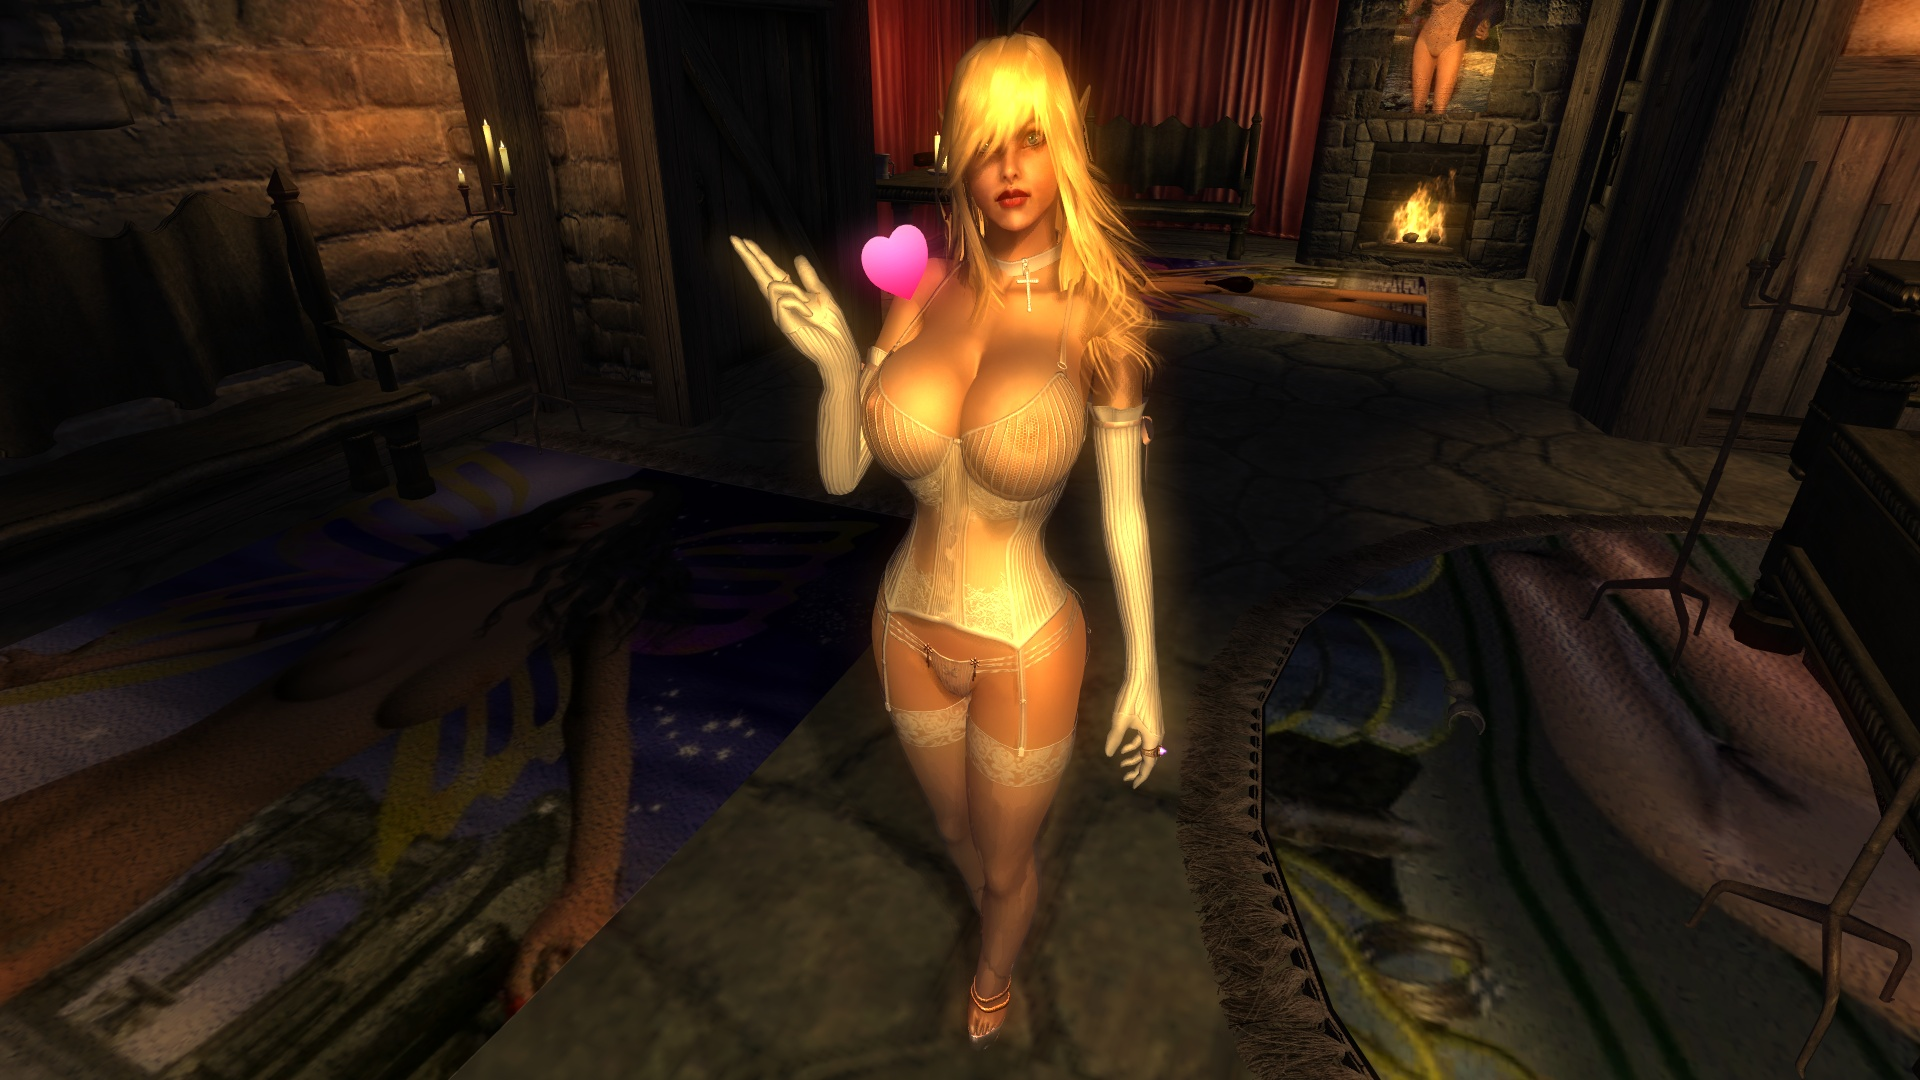 Naked woman in games — img 9